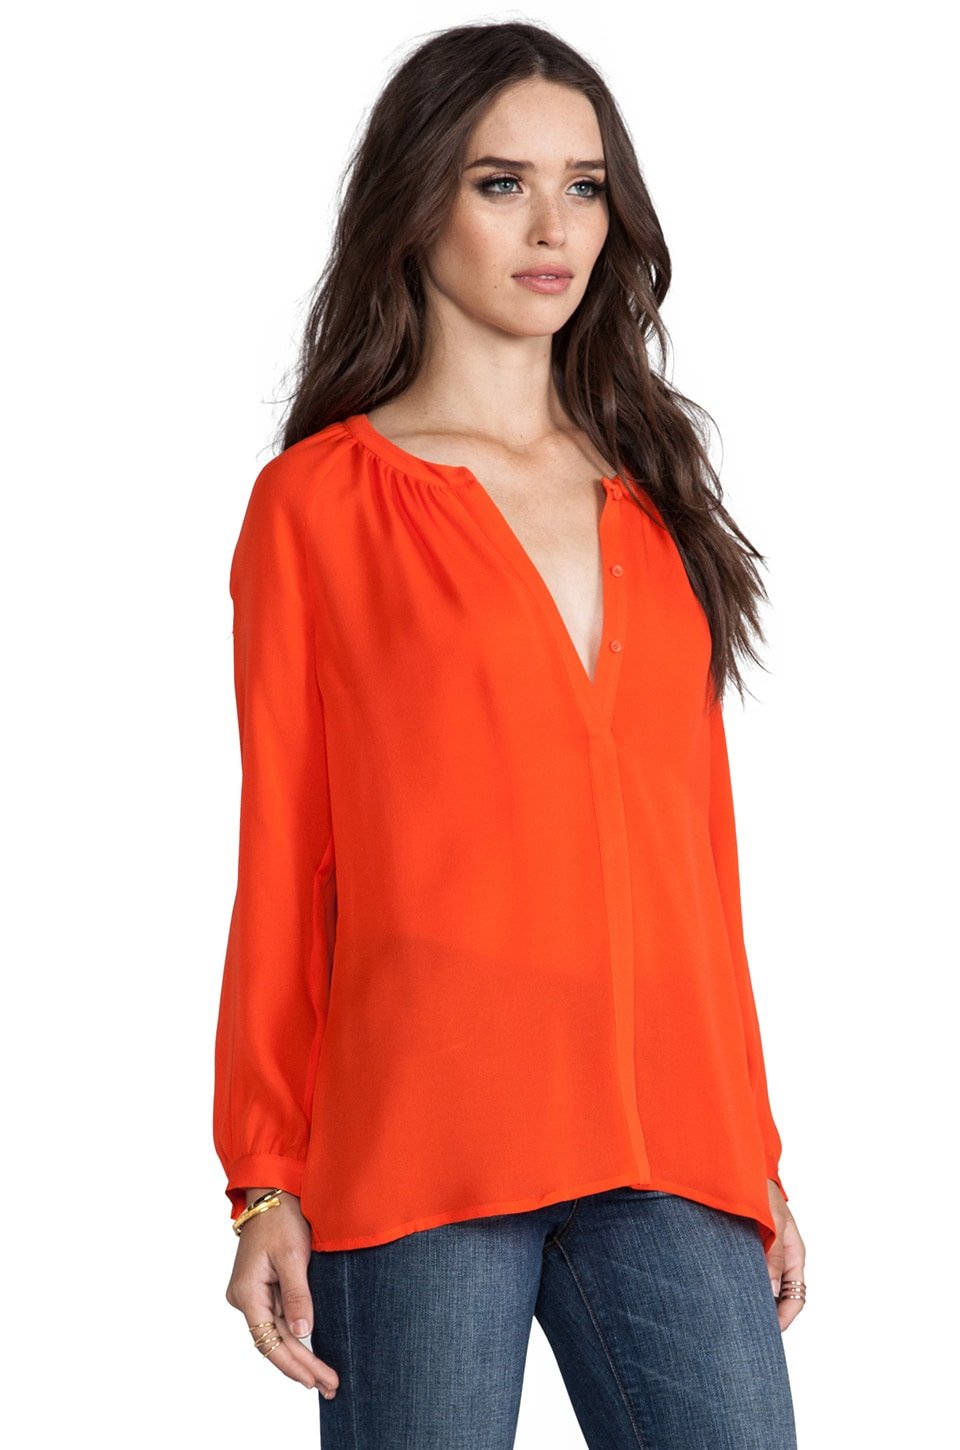 Joie Kade Blouse in Spicy Orange